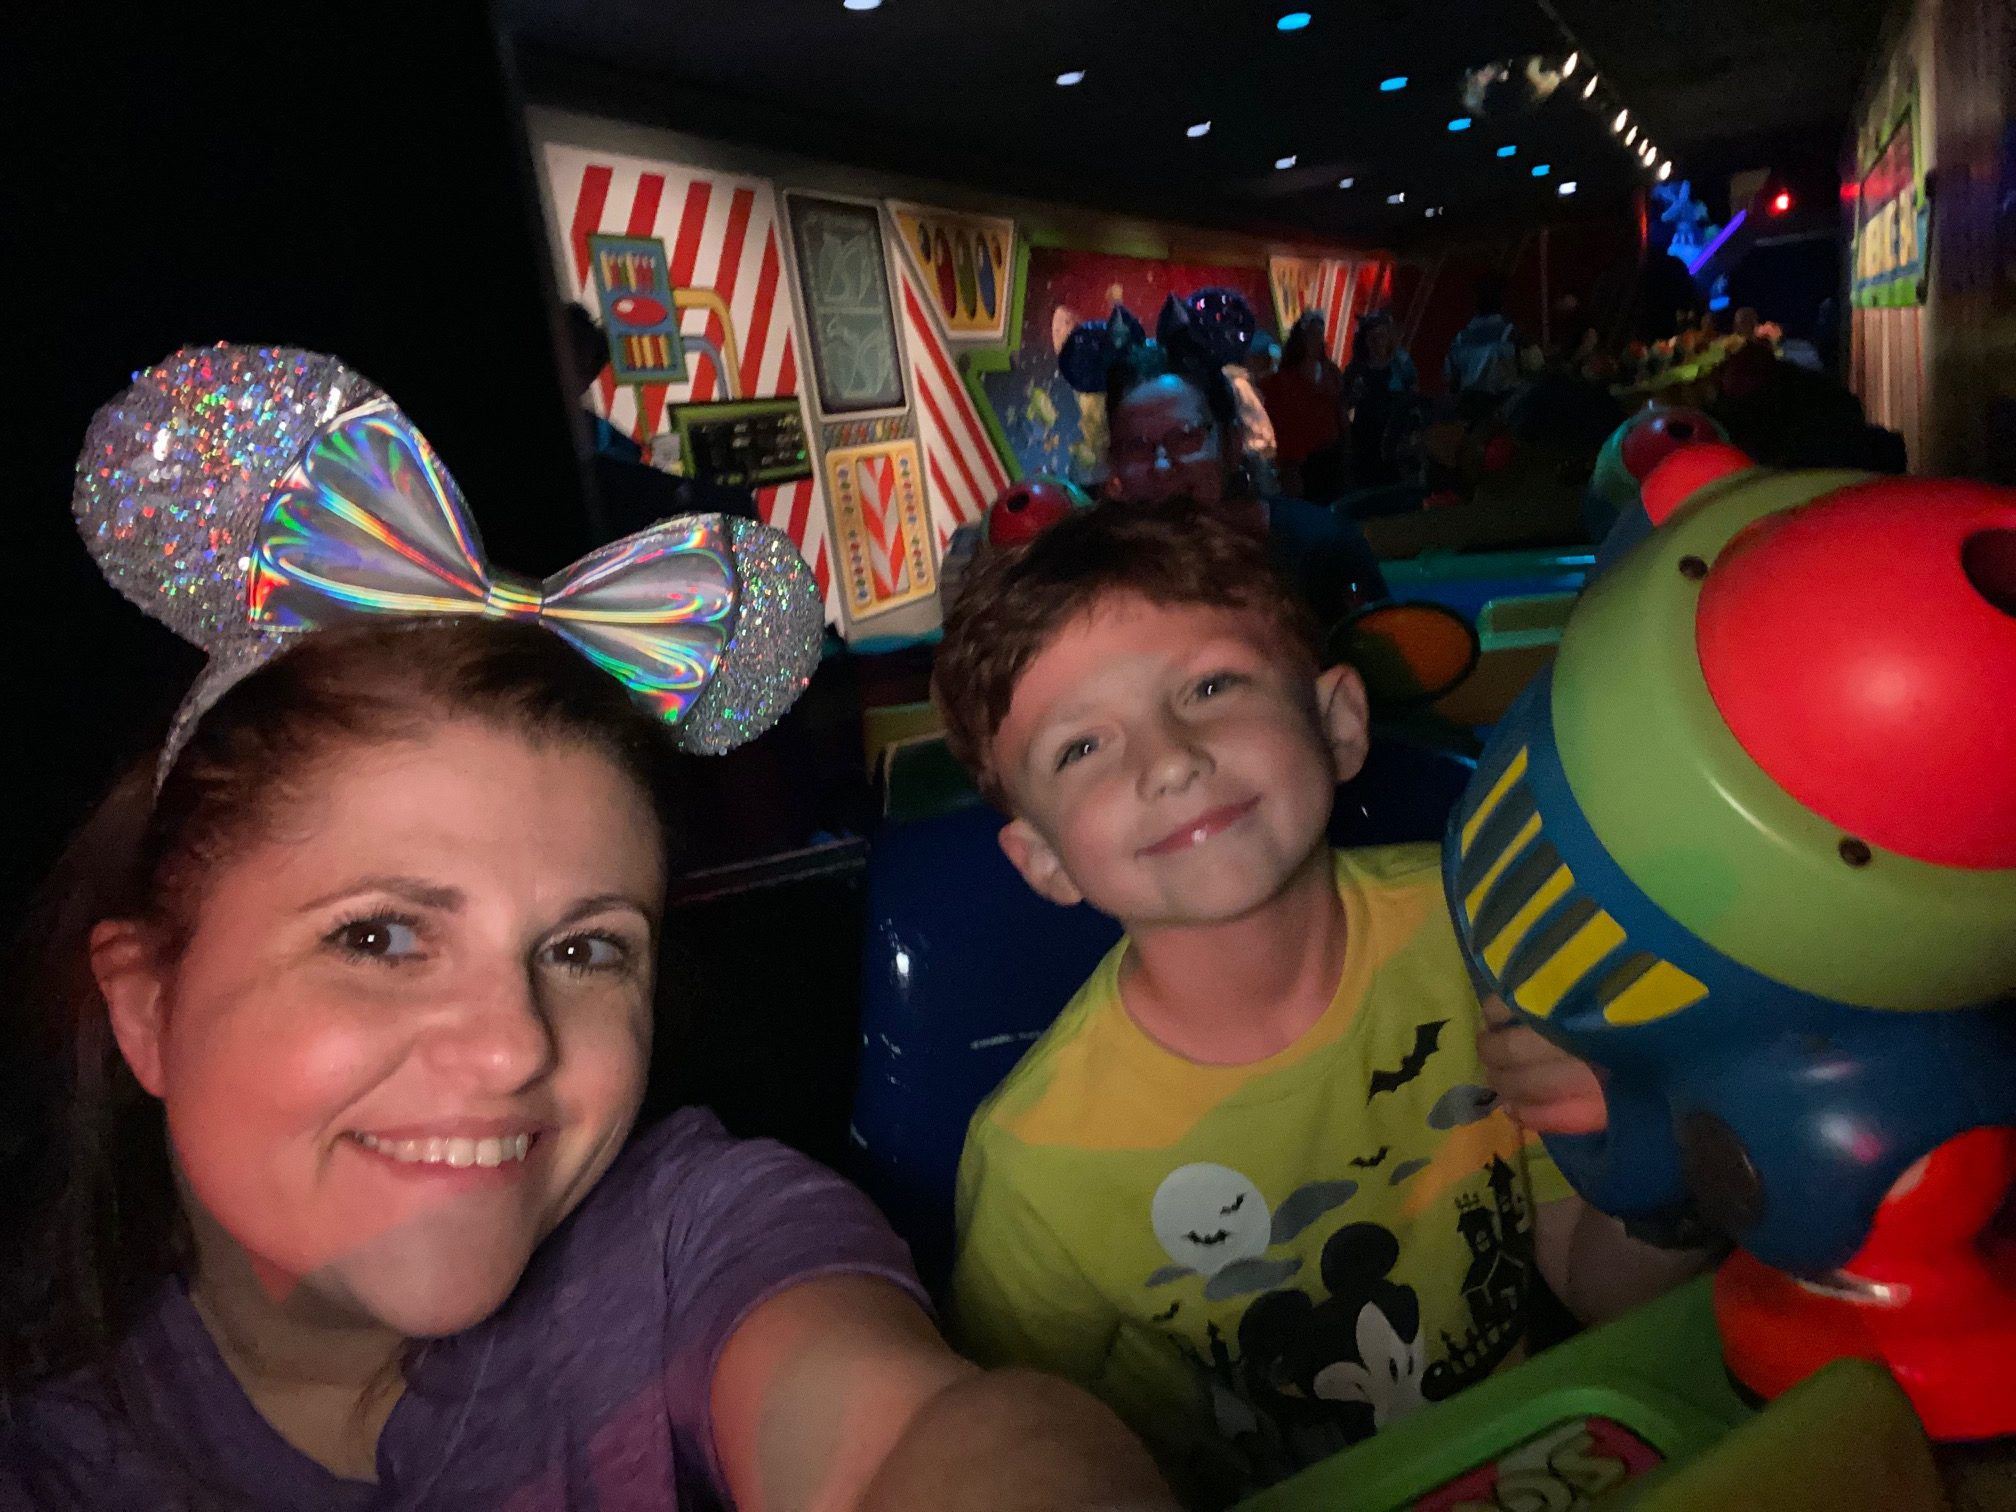 Buzz Lightyear Space Ranger Spin at Magic Kingdom Park